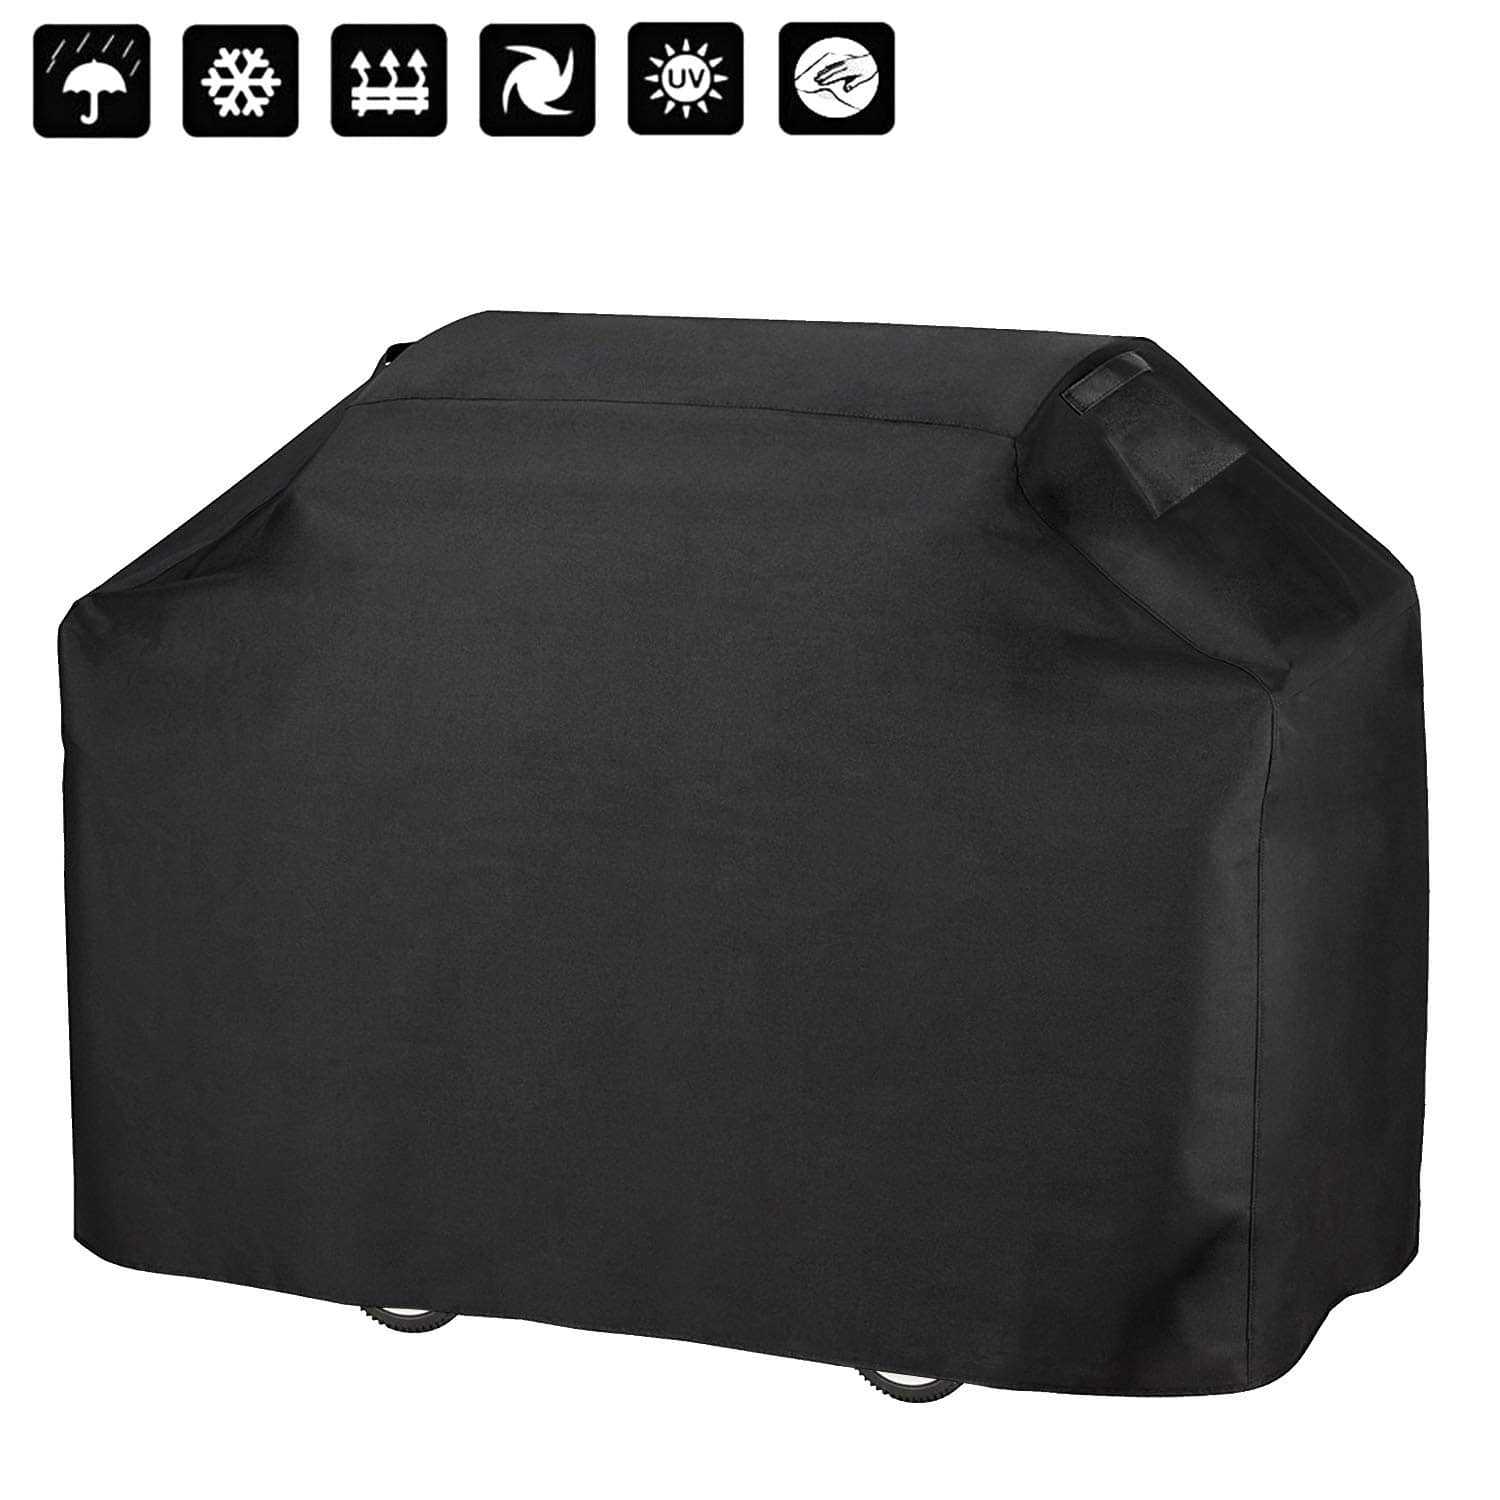 Anglink BBQ Grill Cover, 58 inches Heavy Duty Waterproof Barbecue Cover with Double Stitching and Heat Sealed Seams, 600D Oxford Rip-Stop Gas Grill Cover $15.99